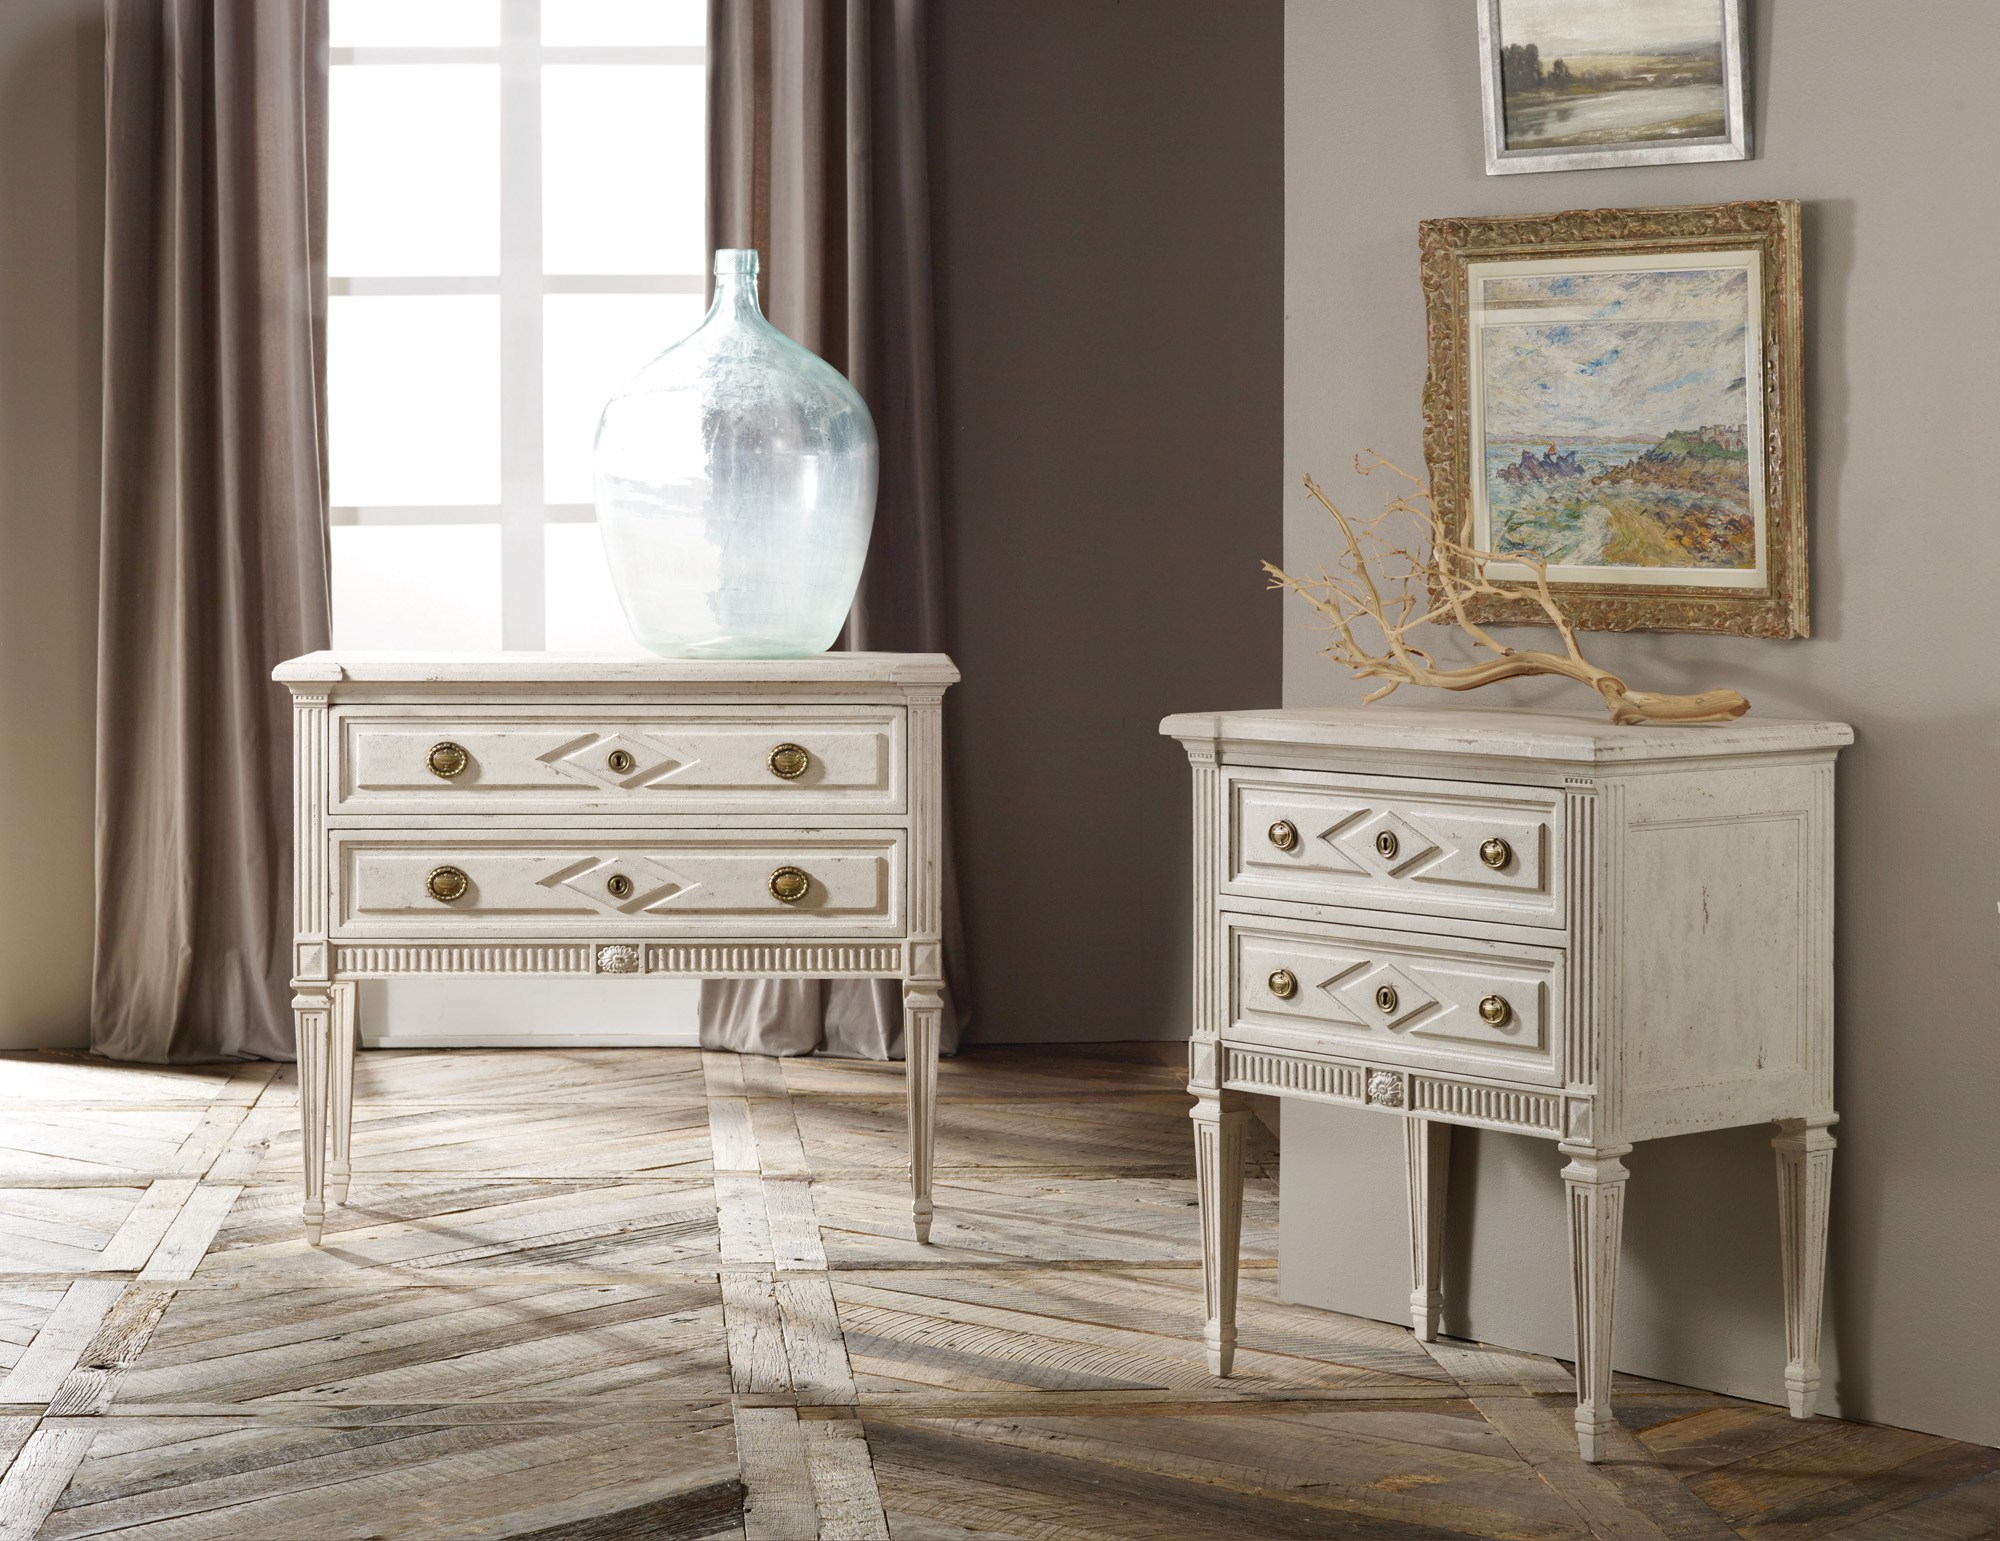 Modern Furniture History paris bedside chest - chests | modern history